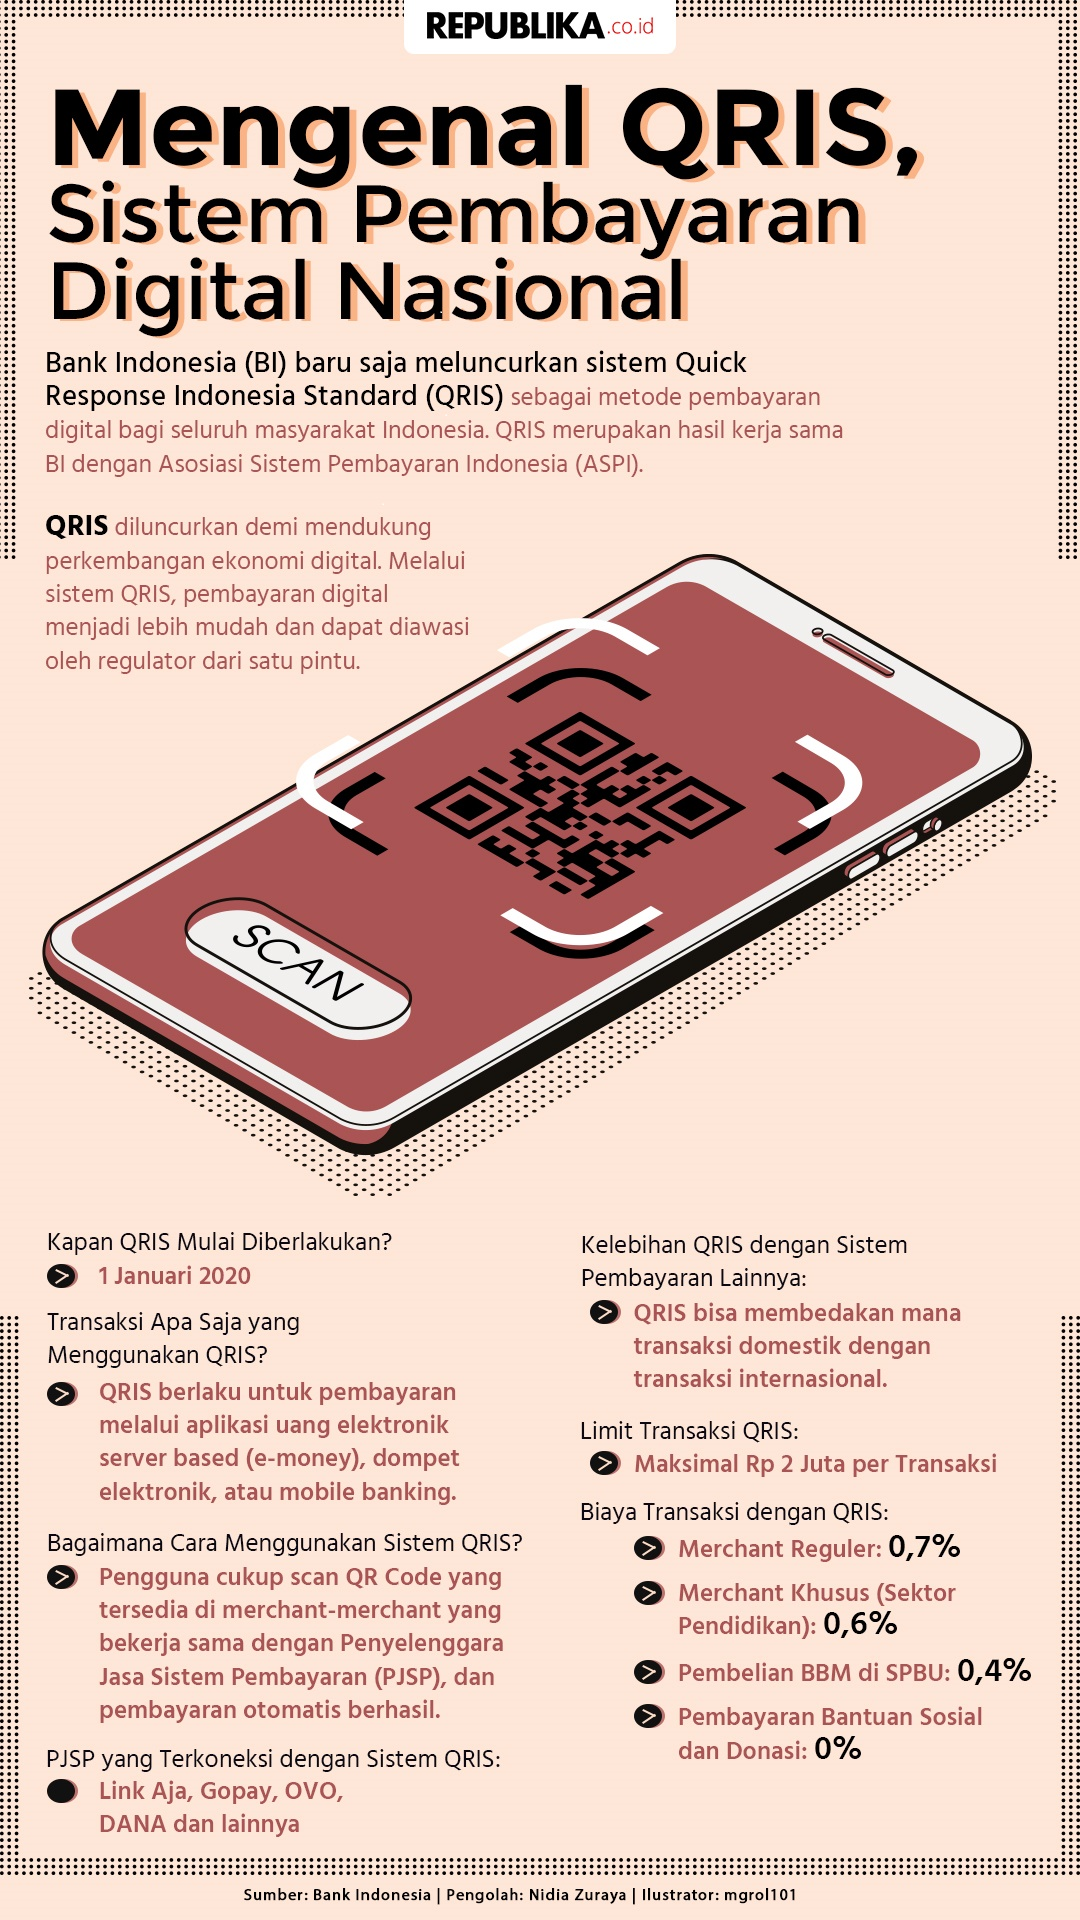 Infografis QRIS. Sumber: republika.co.id